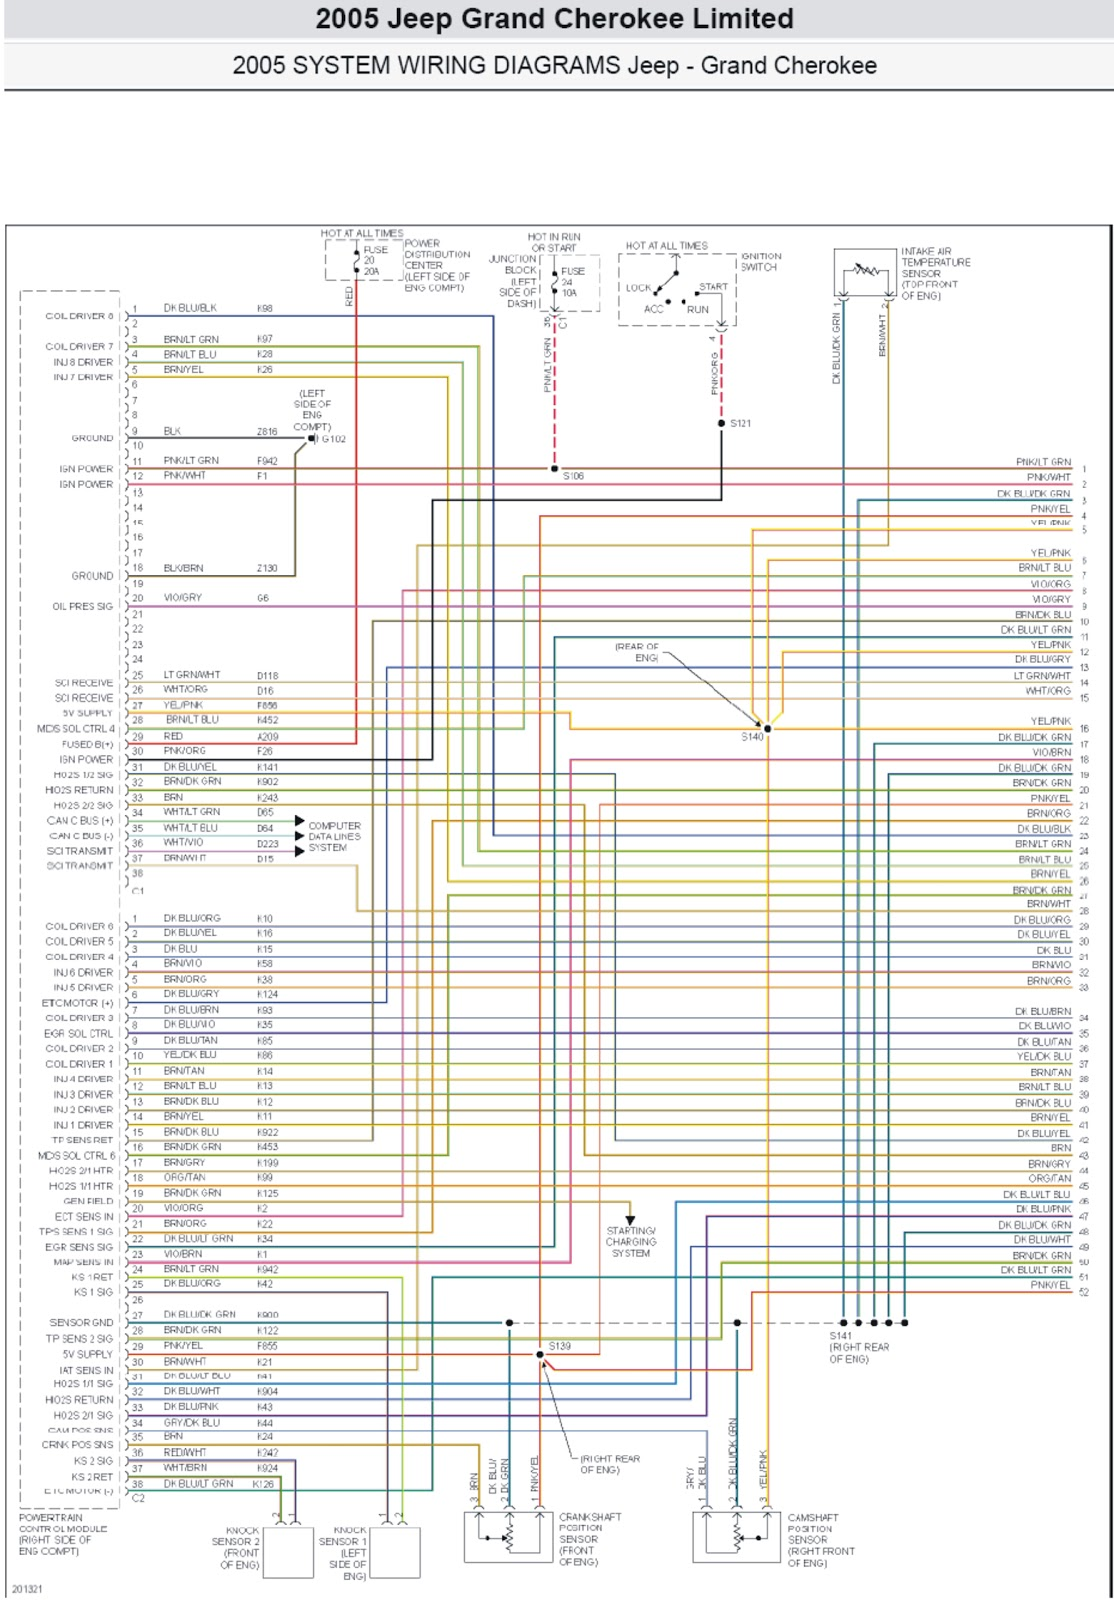 1997 Jeep Wrangler Stereo Wiring Diagram from 1.bp.blogspot.com